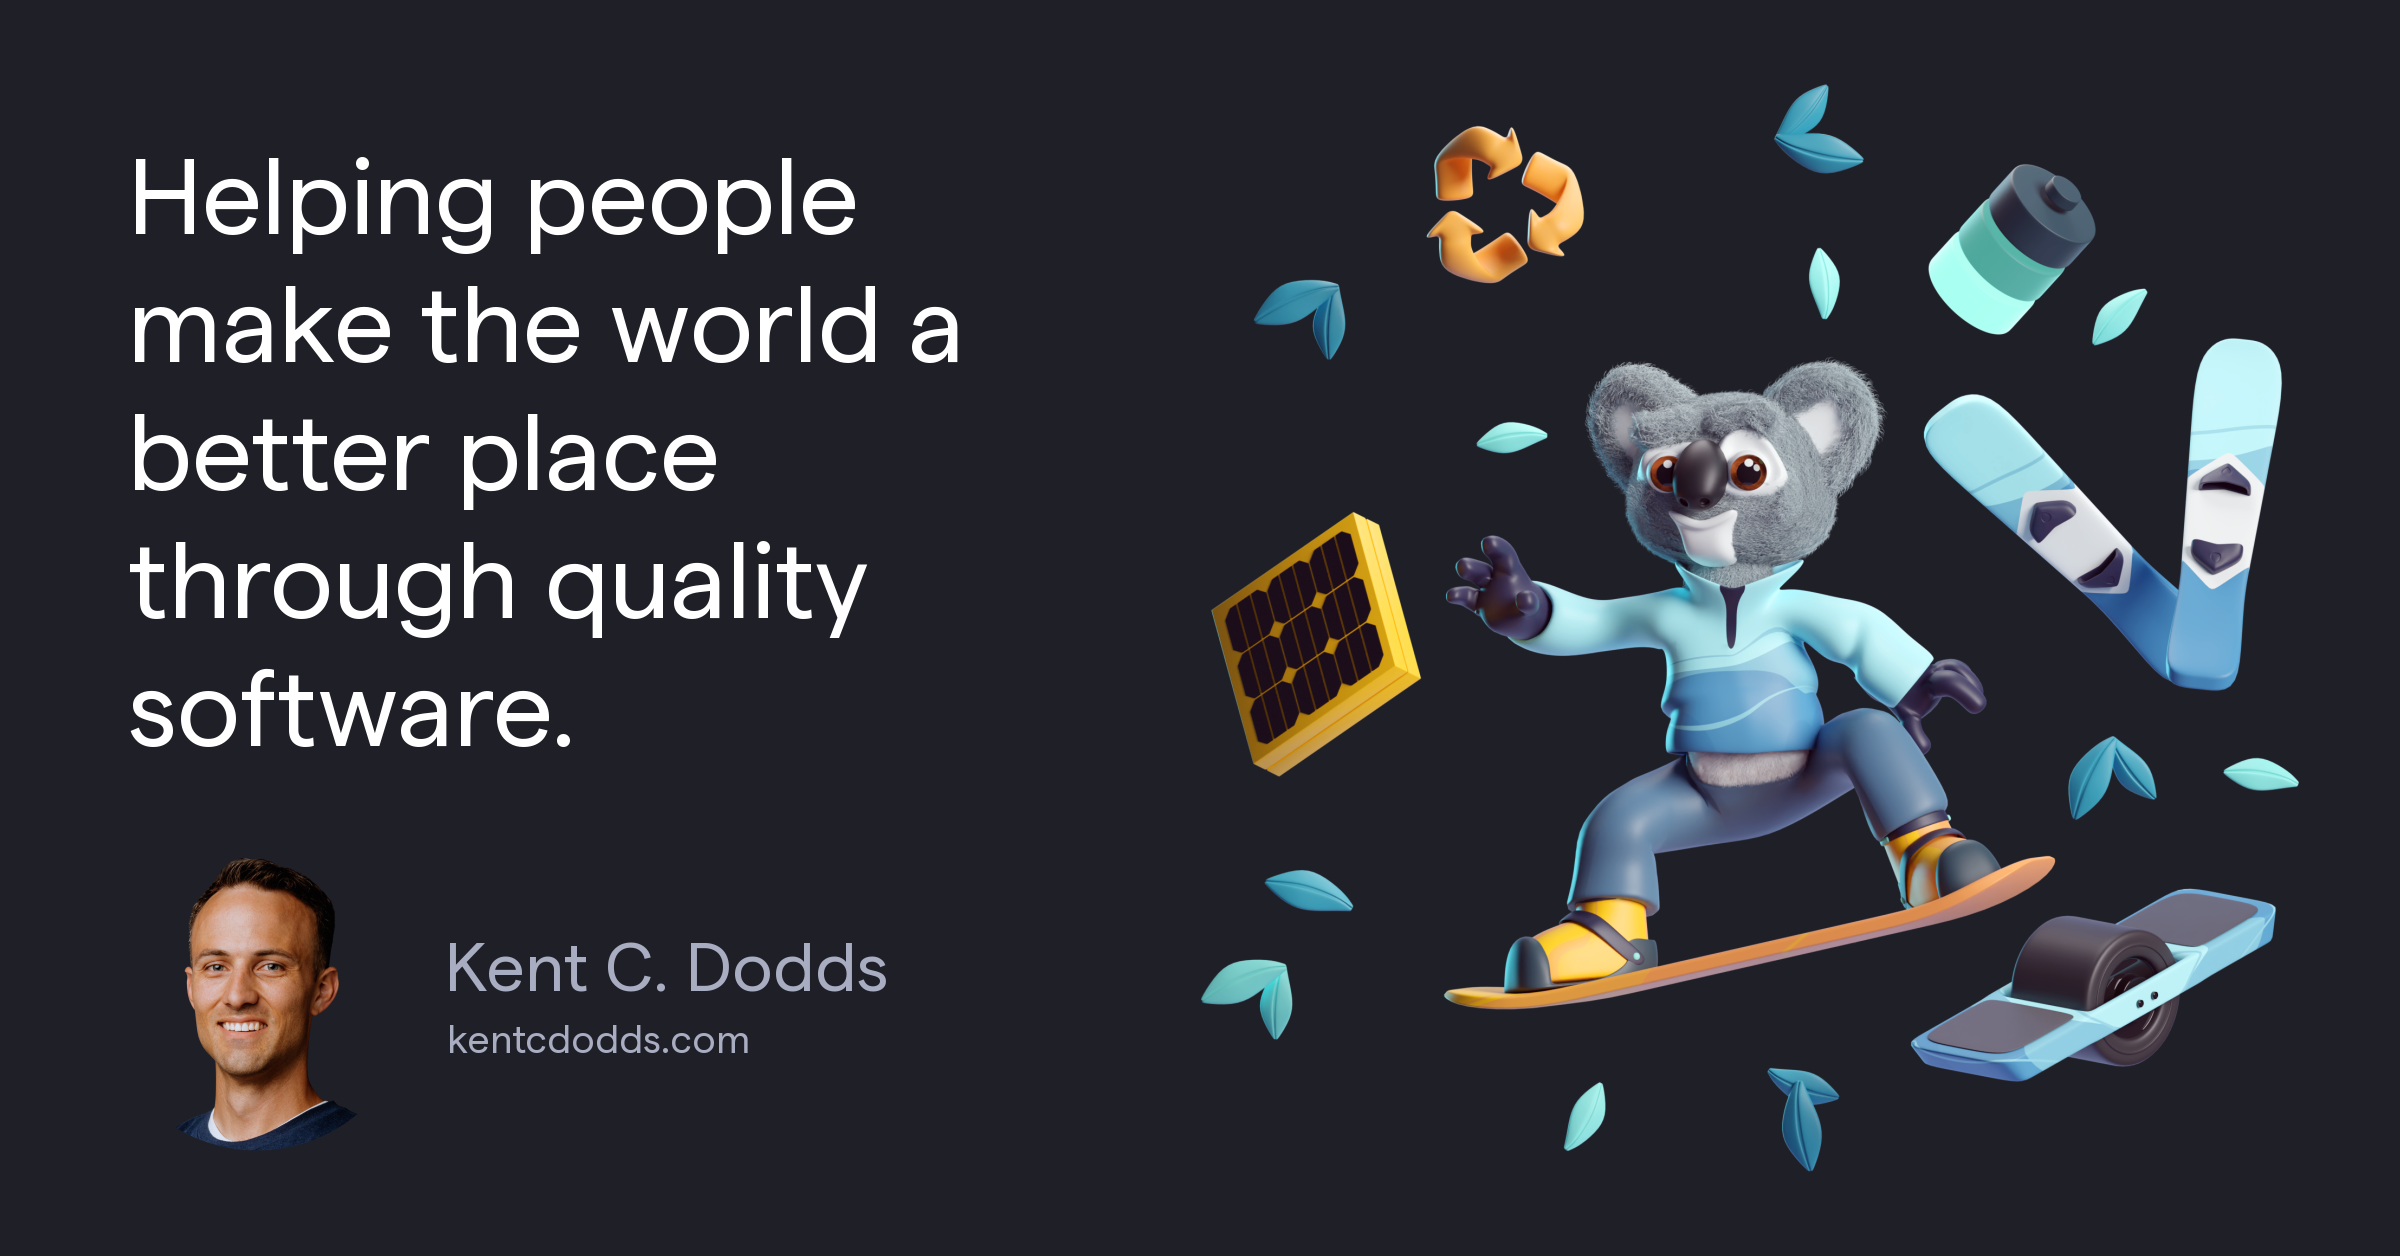 Helping people make the world a better place through quality software